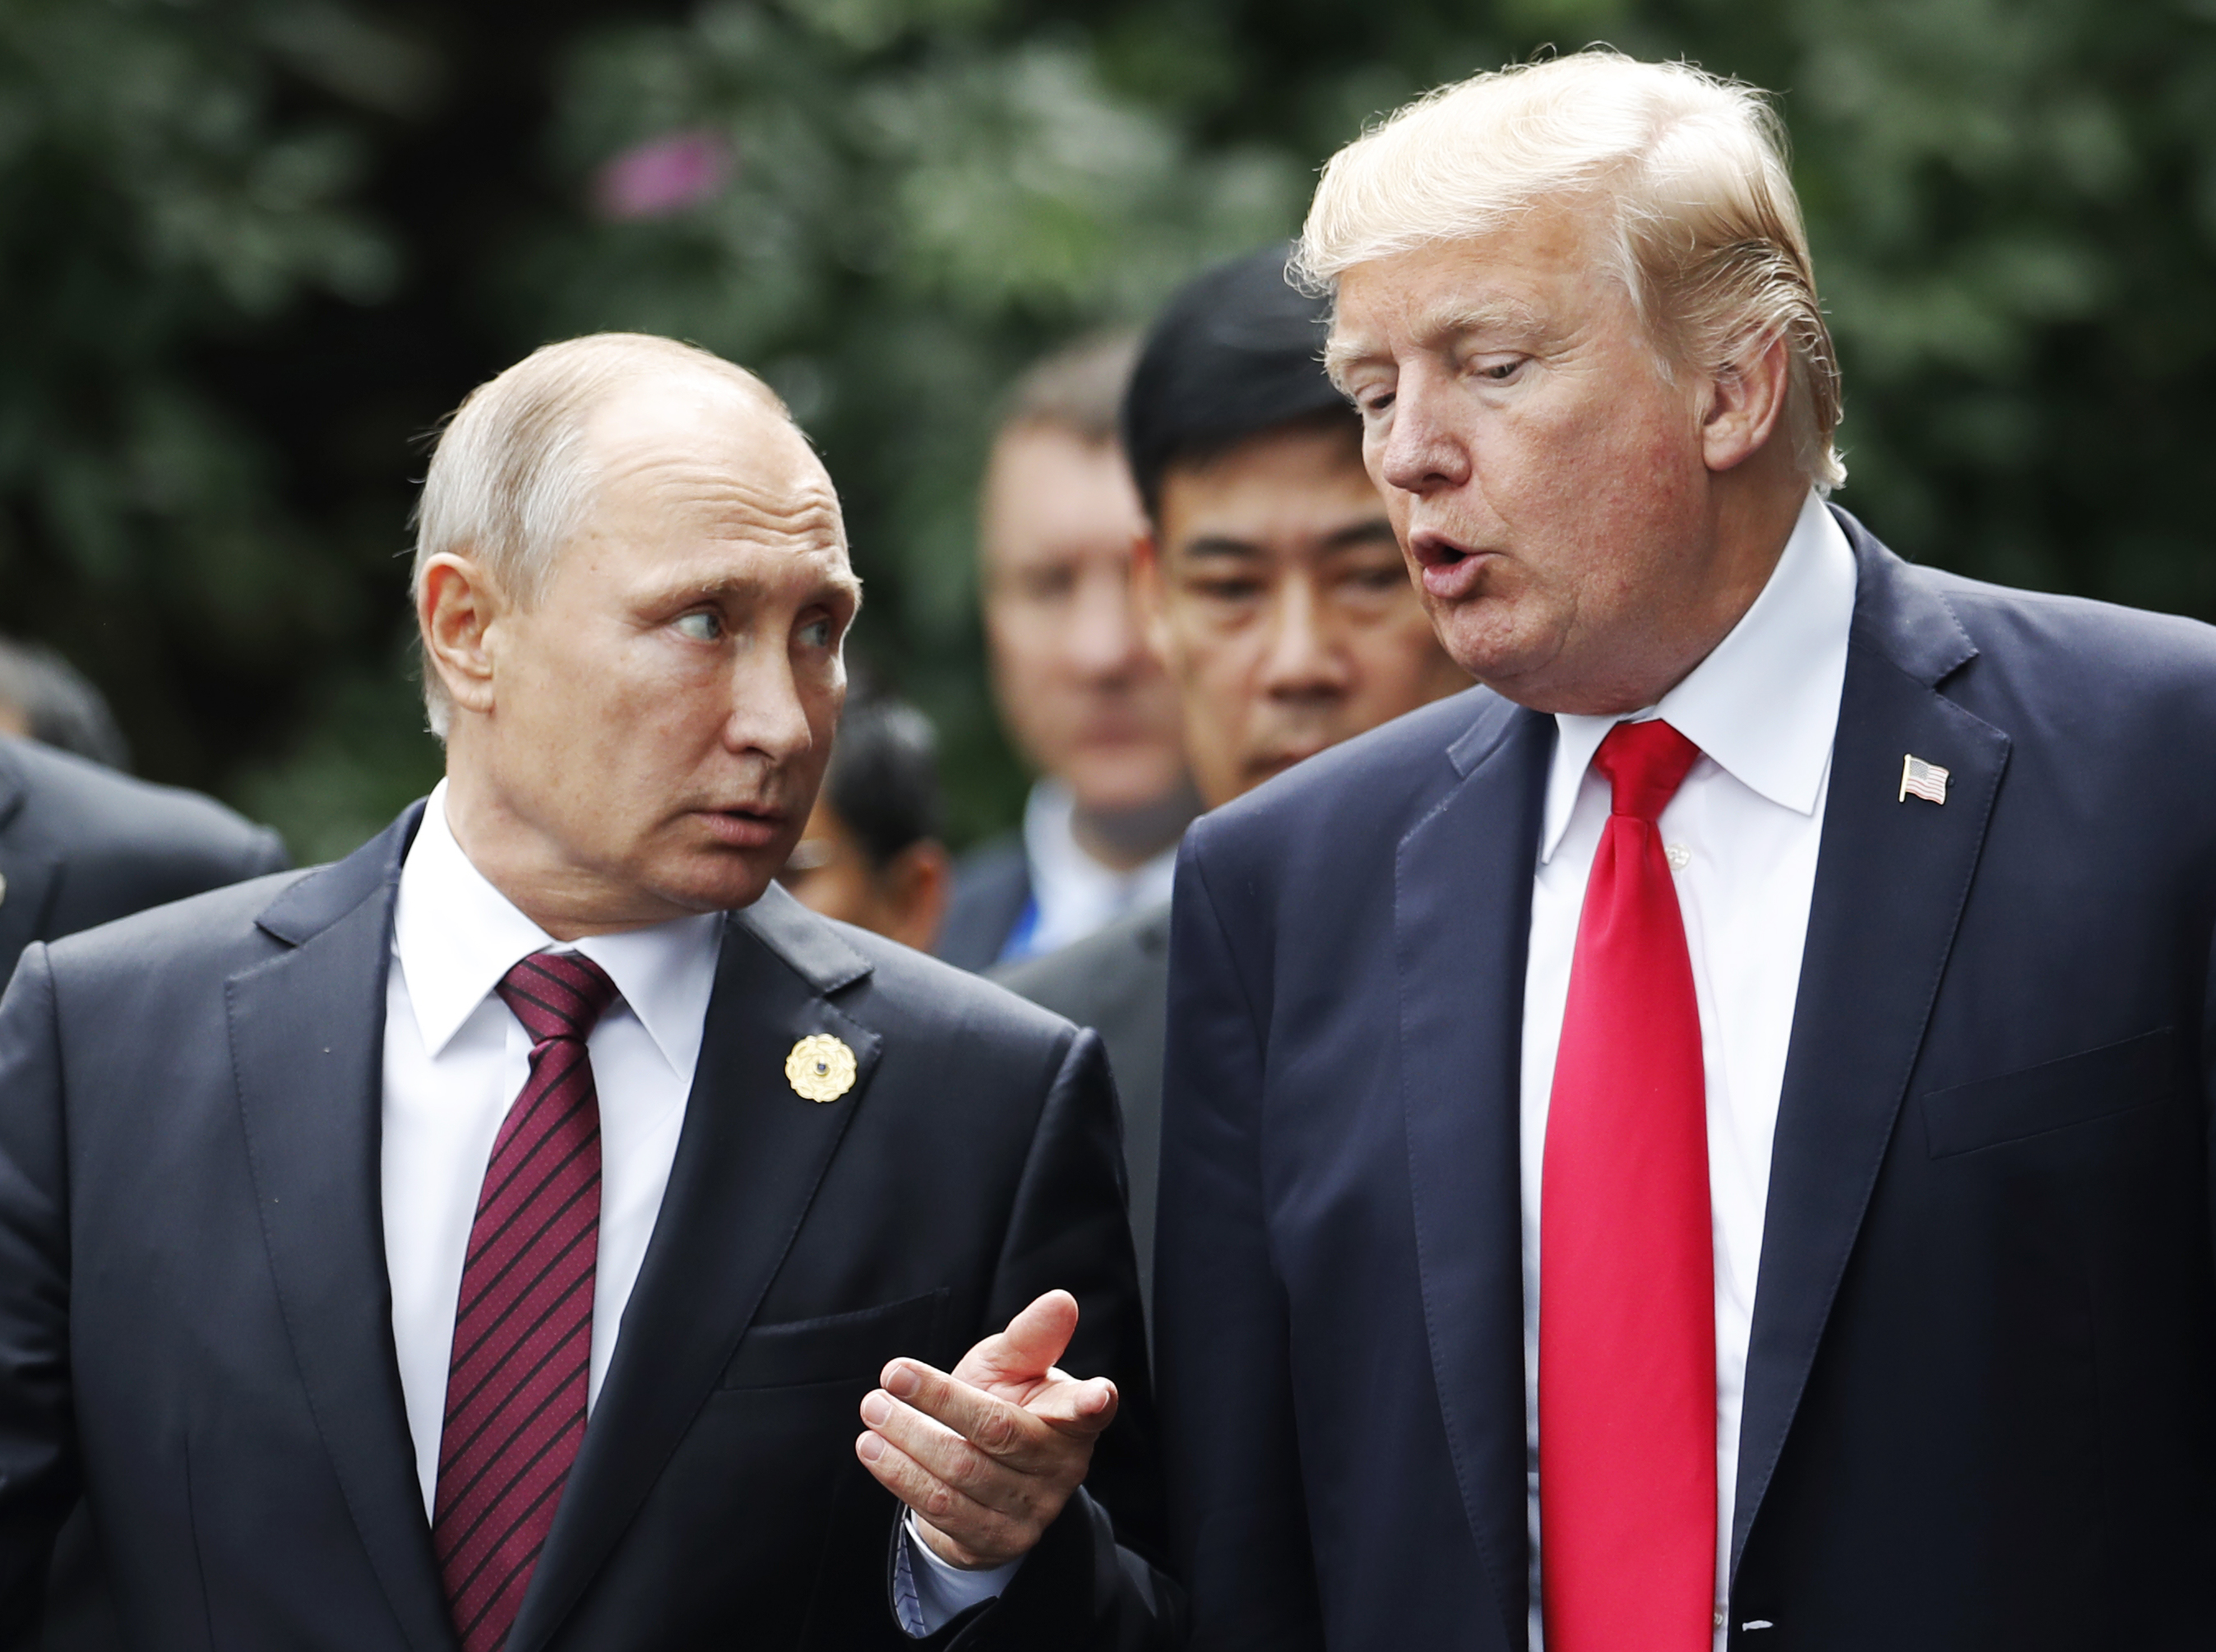 """US President Donald Trump (R) and Russia's President Vladimir Putin talk as they make their way to take the """"family photo"""" during the Asia-Pacific Economic Cooperation (APEC) leaders' summit in the central Vietnamese city of Danang on November 11, 2017. World leaders and senior business figures are gathering in the Vietnamese city of Danang this week for the annual 21-member APEC summit. / AFP PHOTO / POOL / JORGE SILVA (Photo credit should read JORGE SILVA/AFP/Getty Images)"""